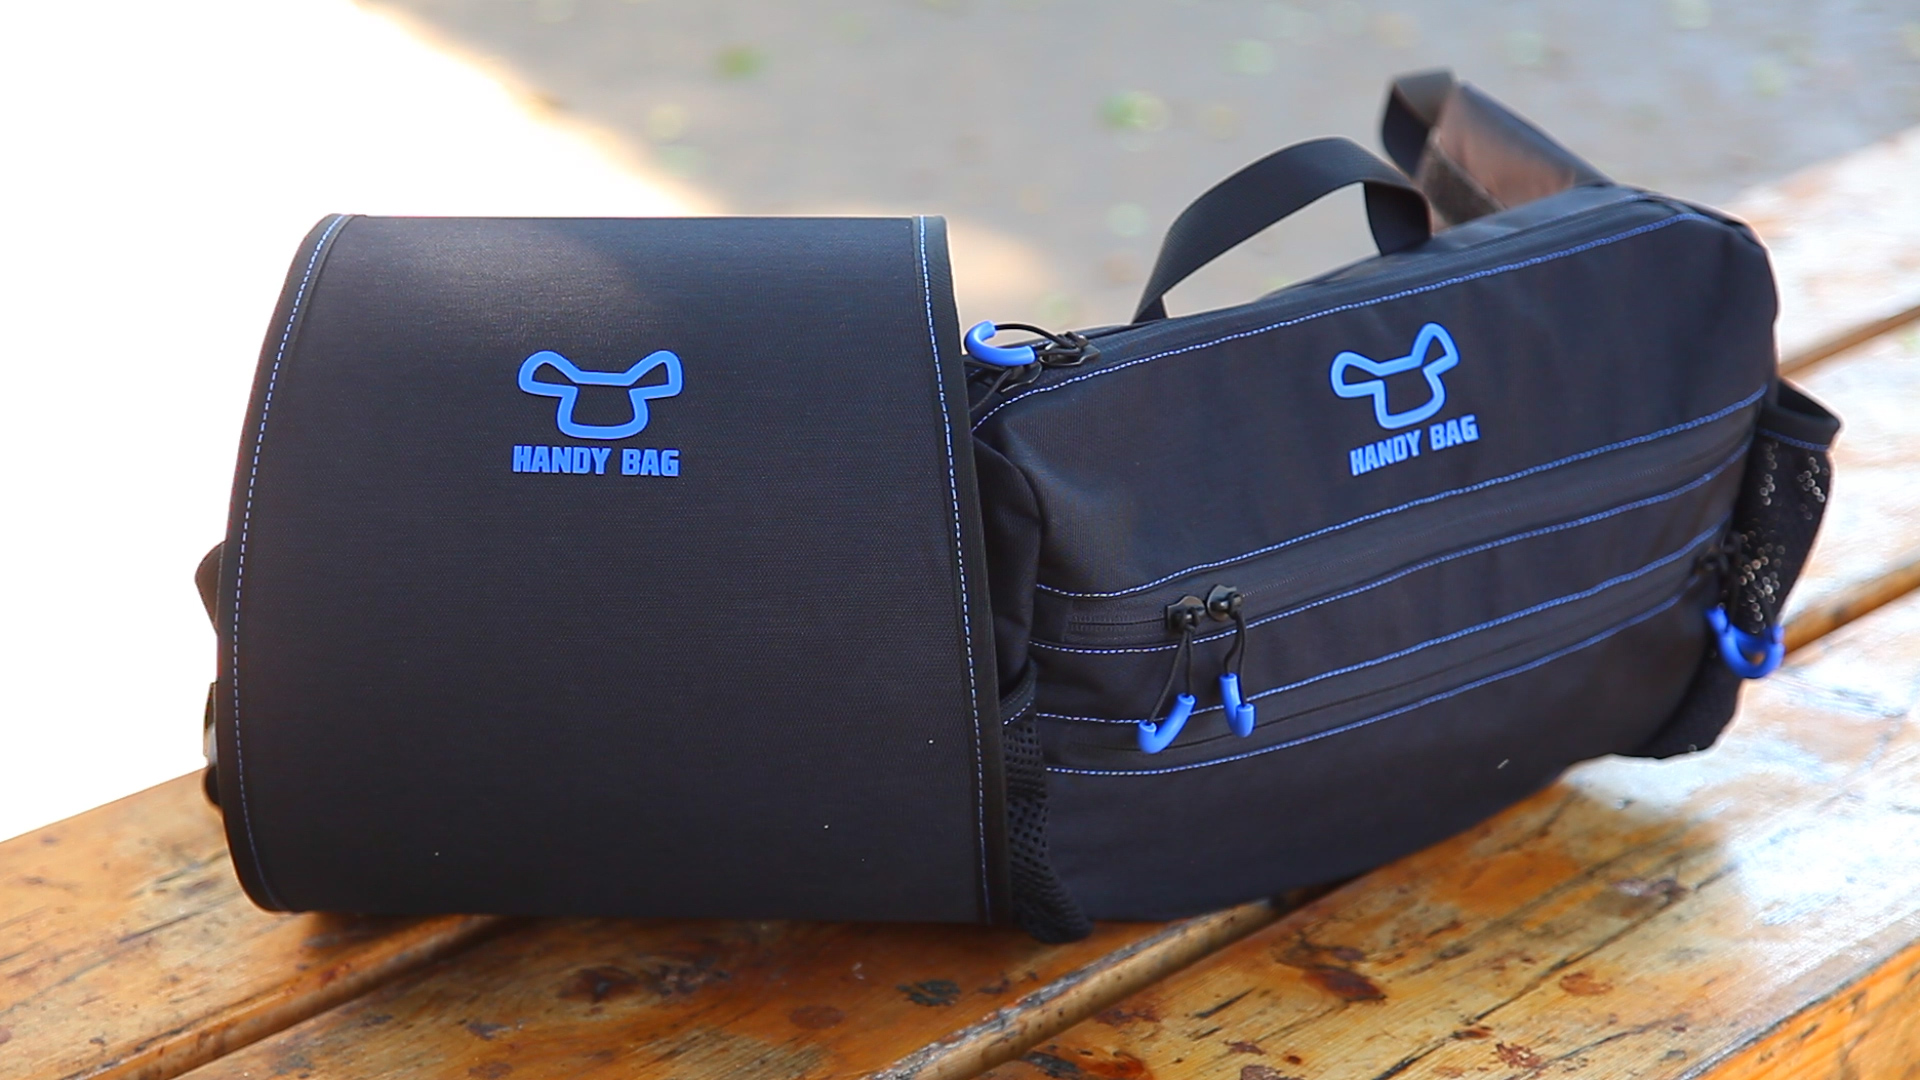 Handy Bag's Dynamic Bag is easily removable from a carrier attached to the back of the chair. Photo: courtesy